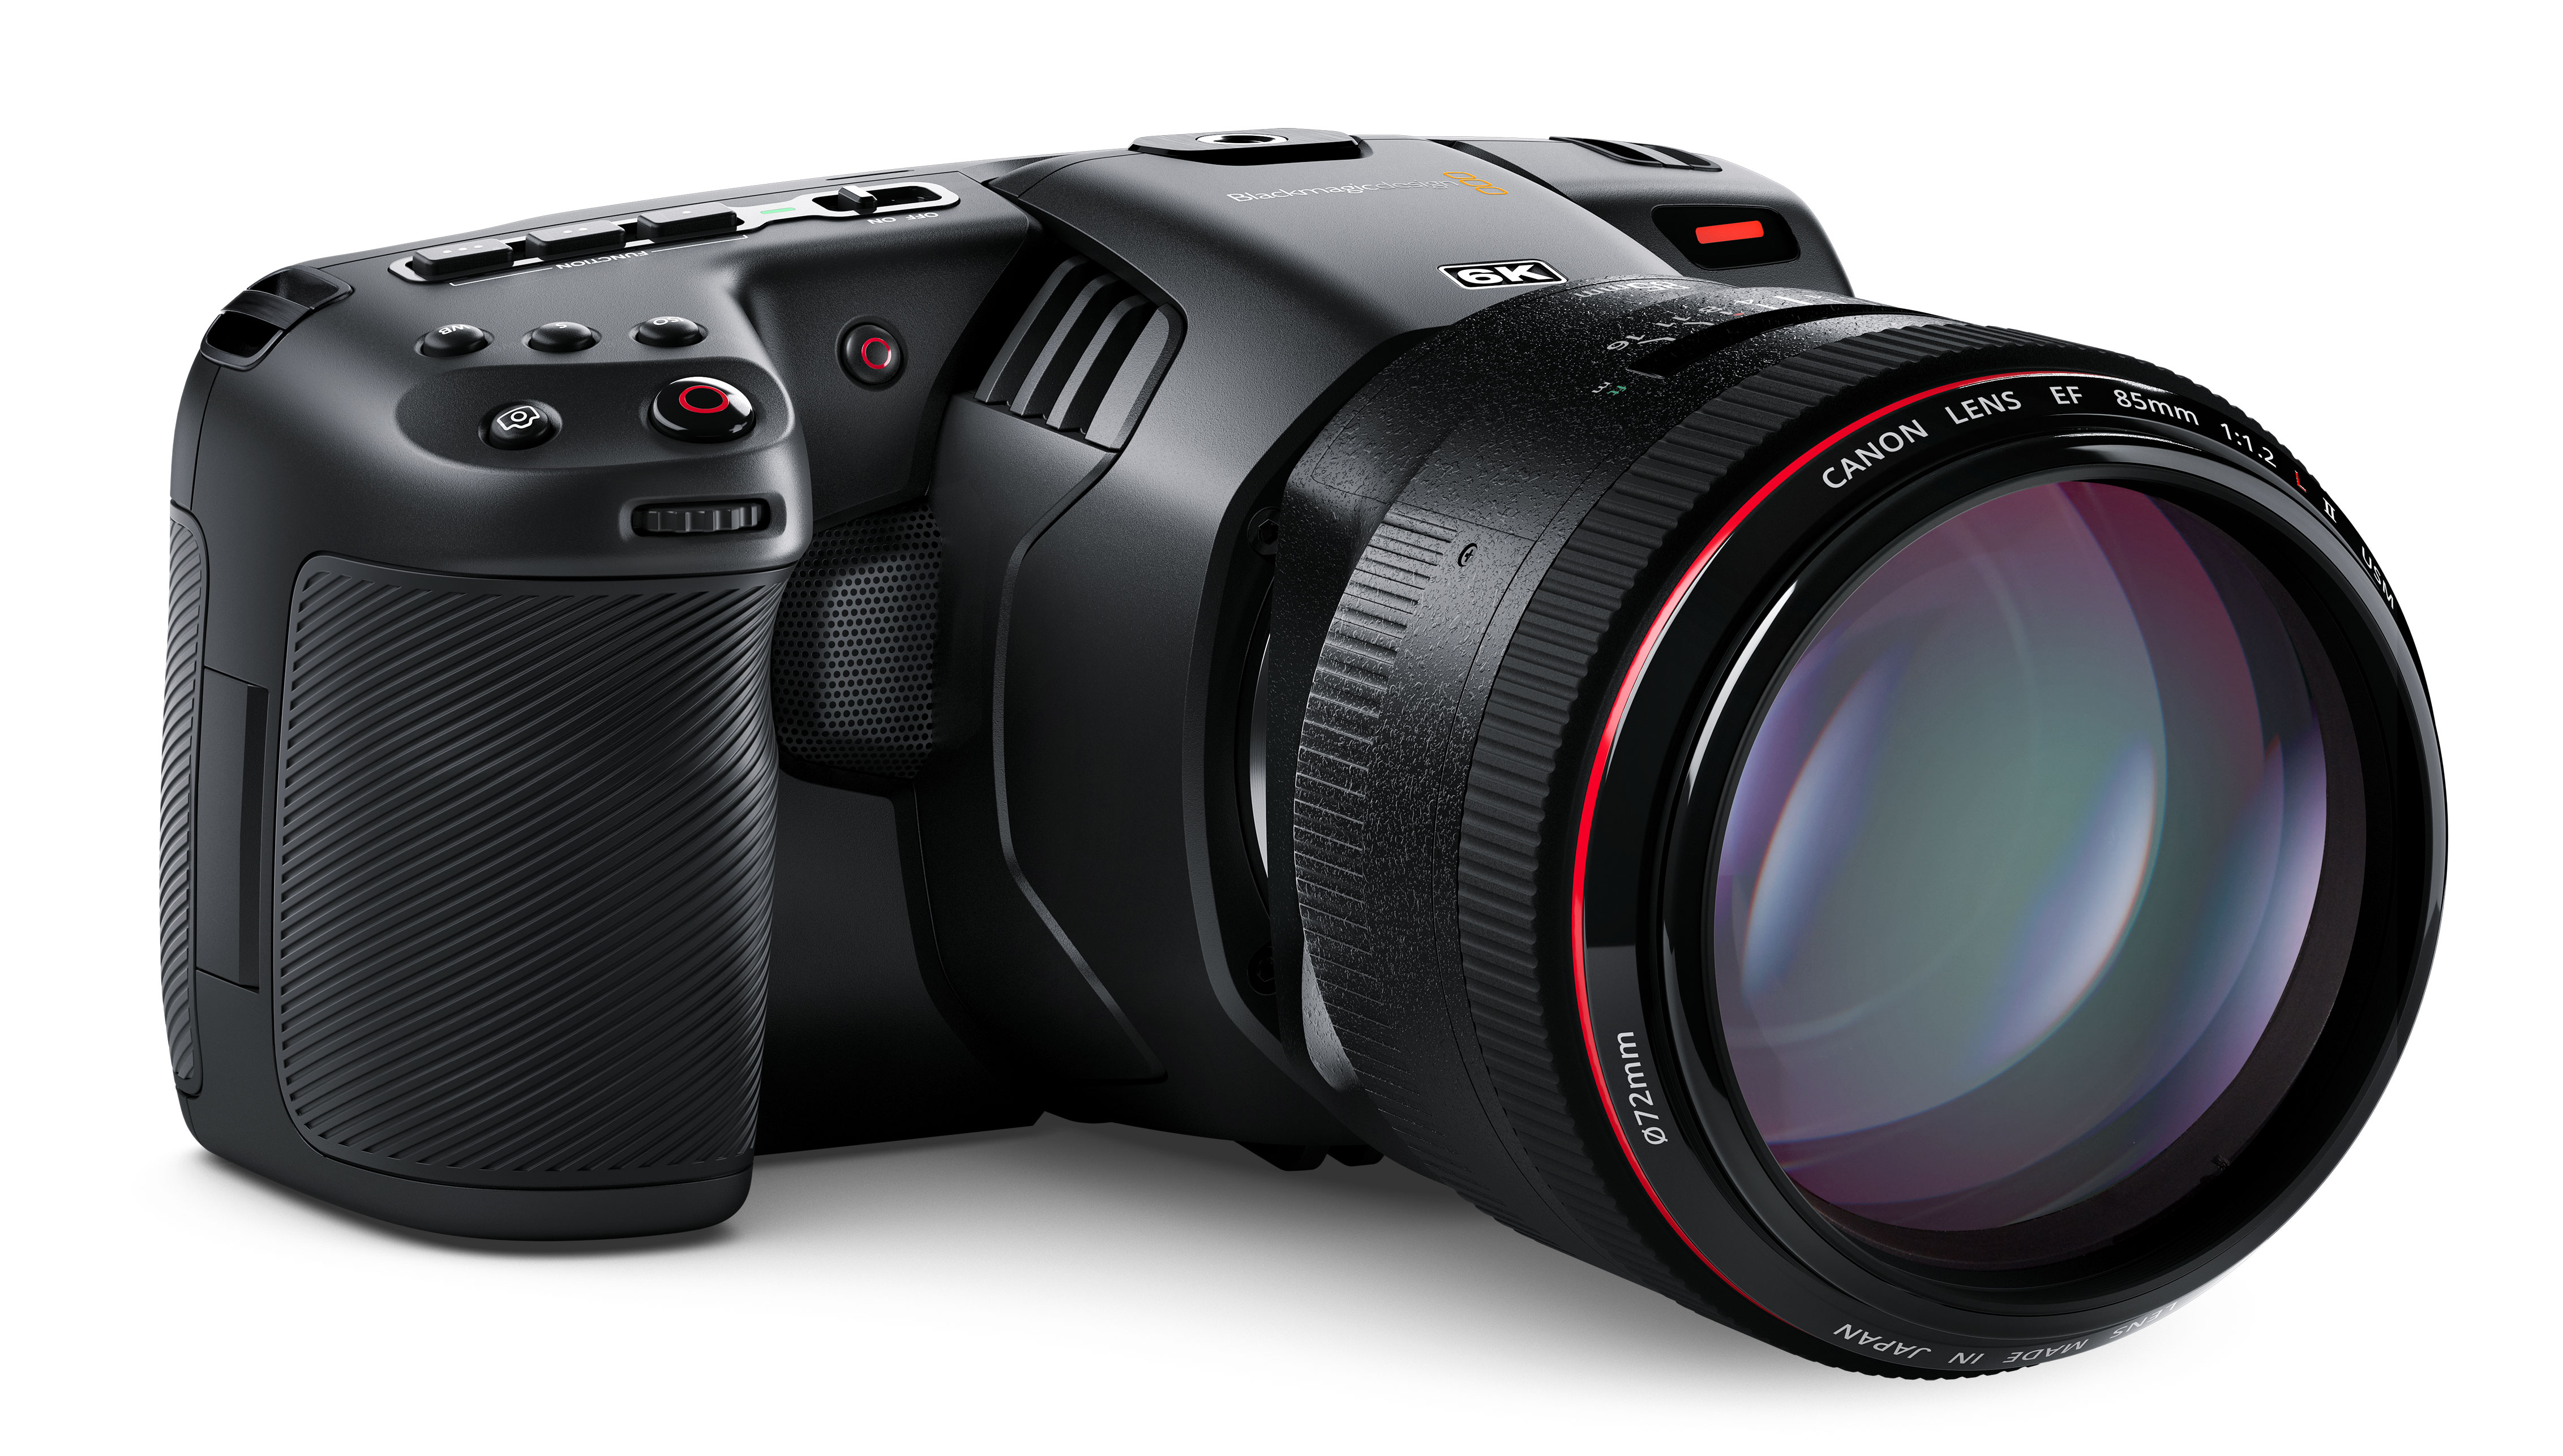 Blackmagic Pocket Cinema Camera 6K with S35 Sensor and Canon EF Mount introduced